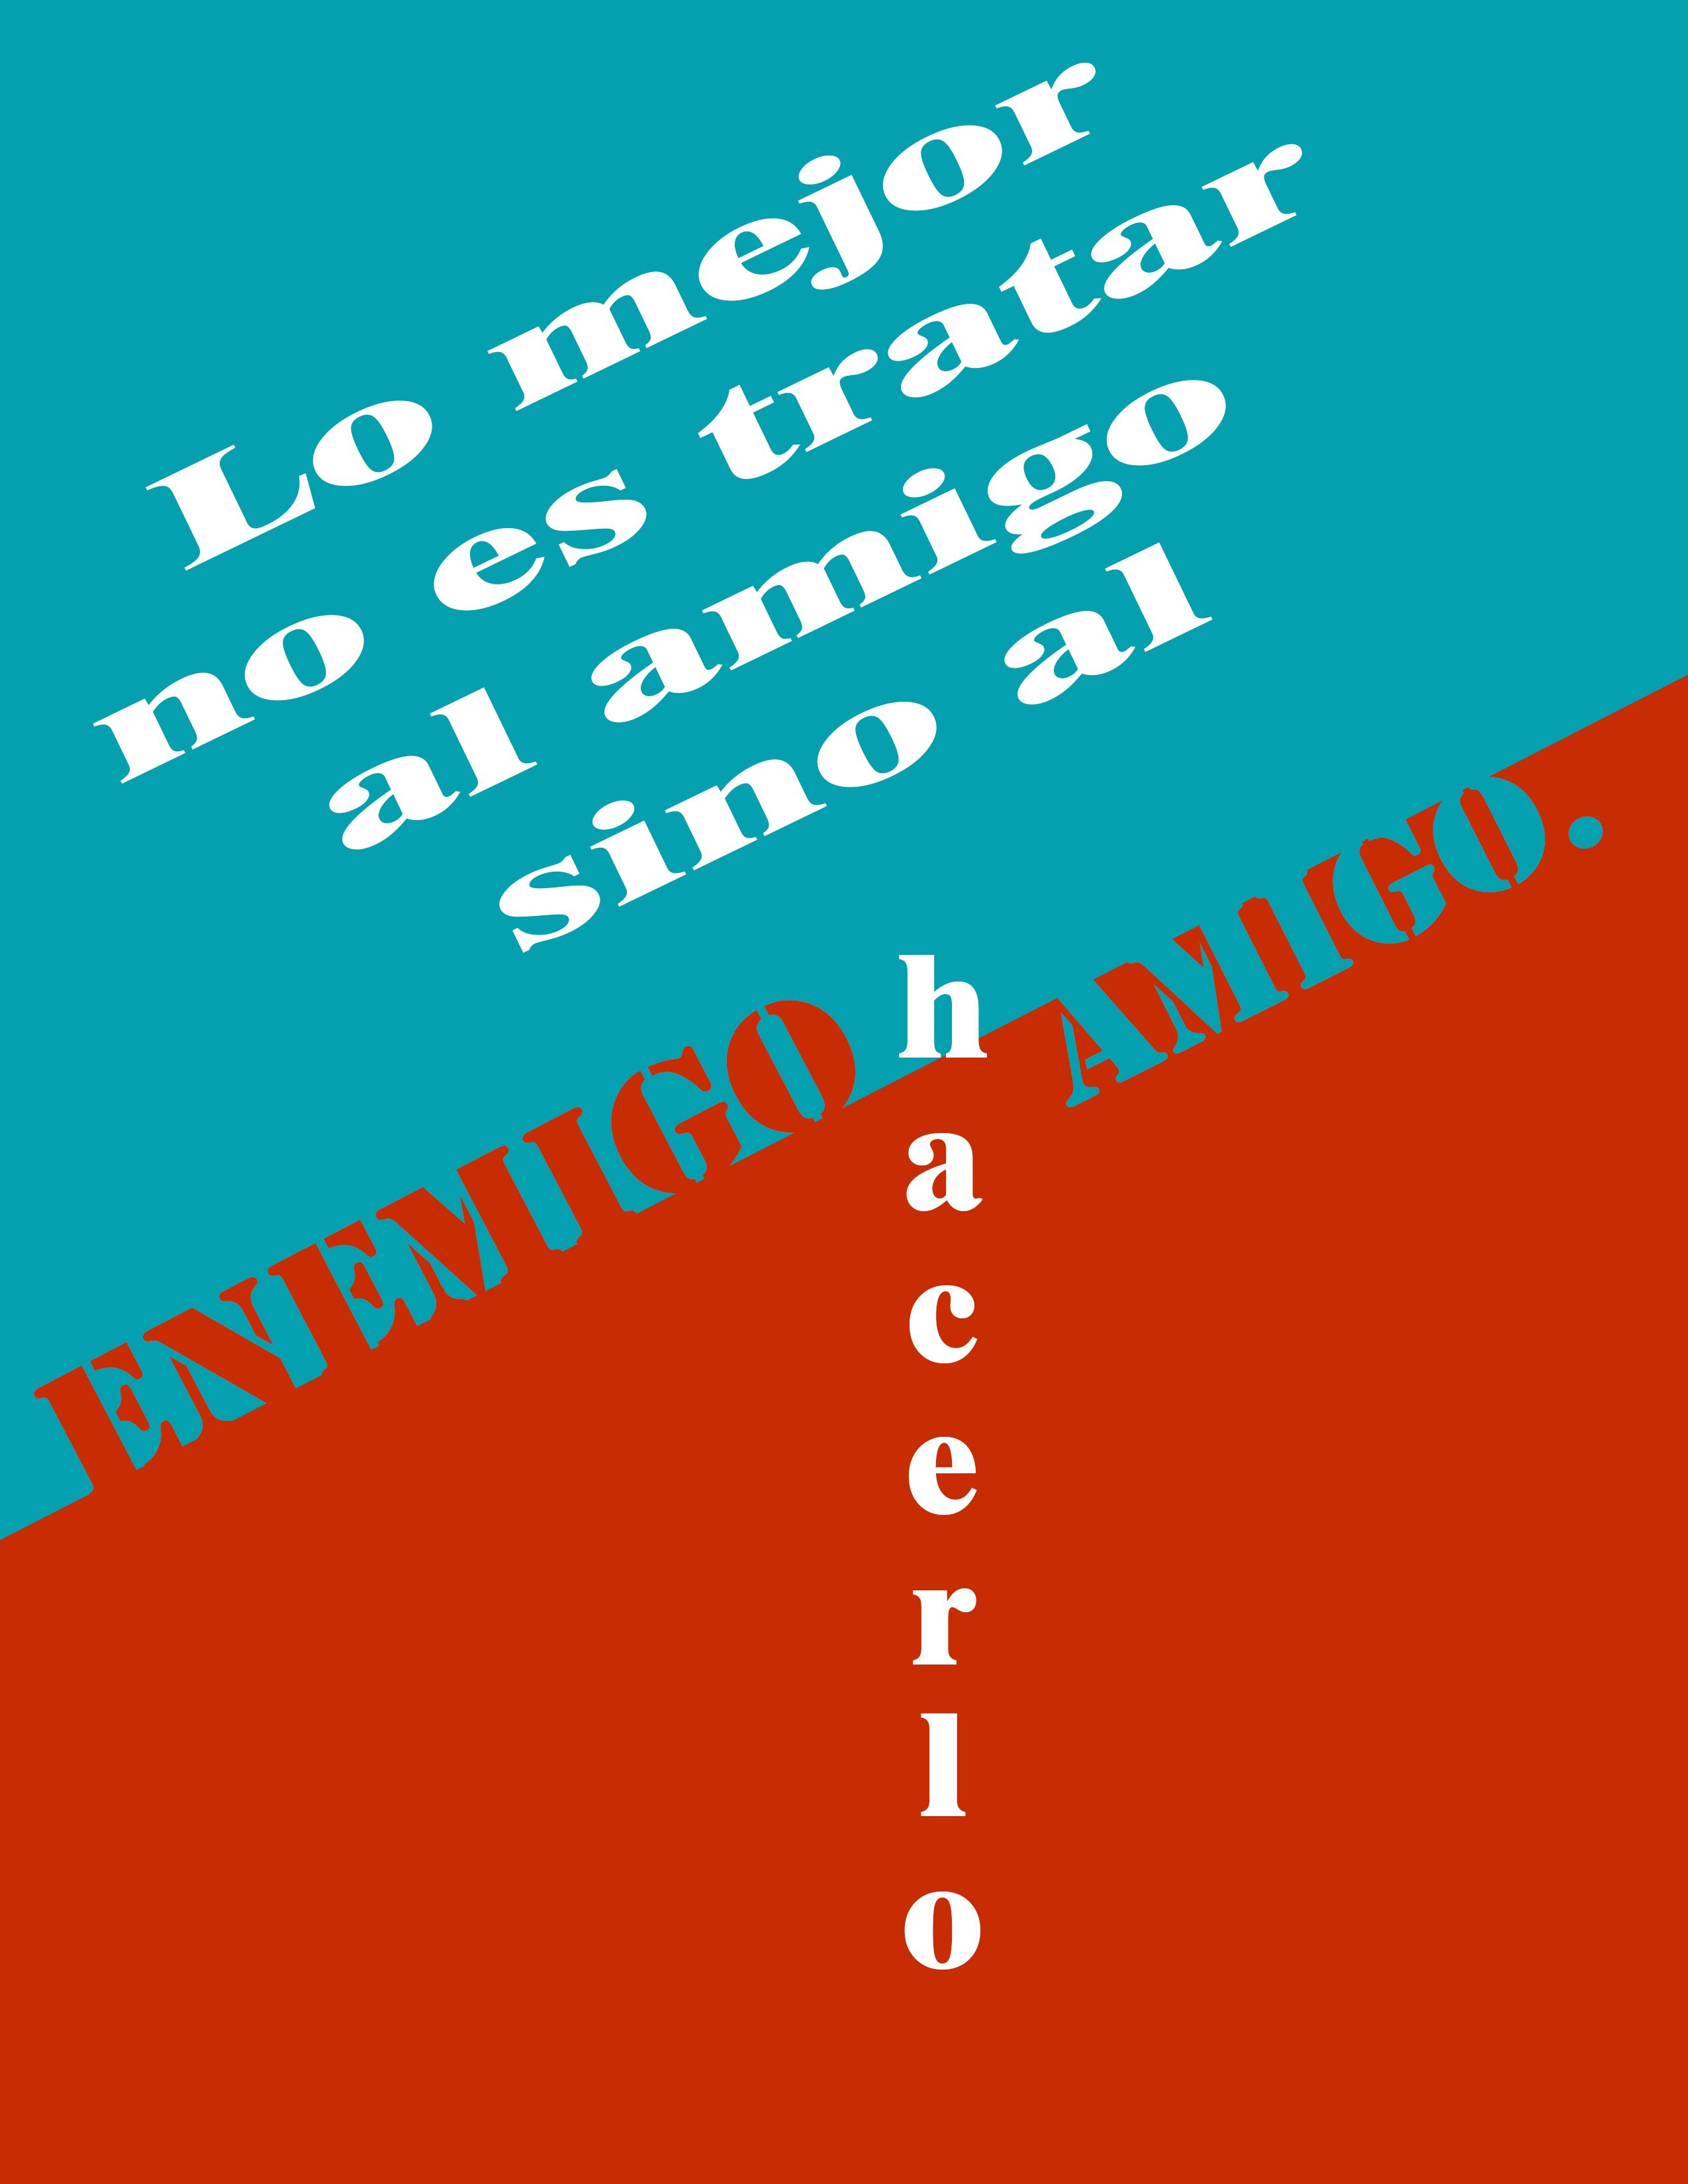 Friendship quote in spanish